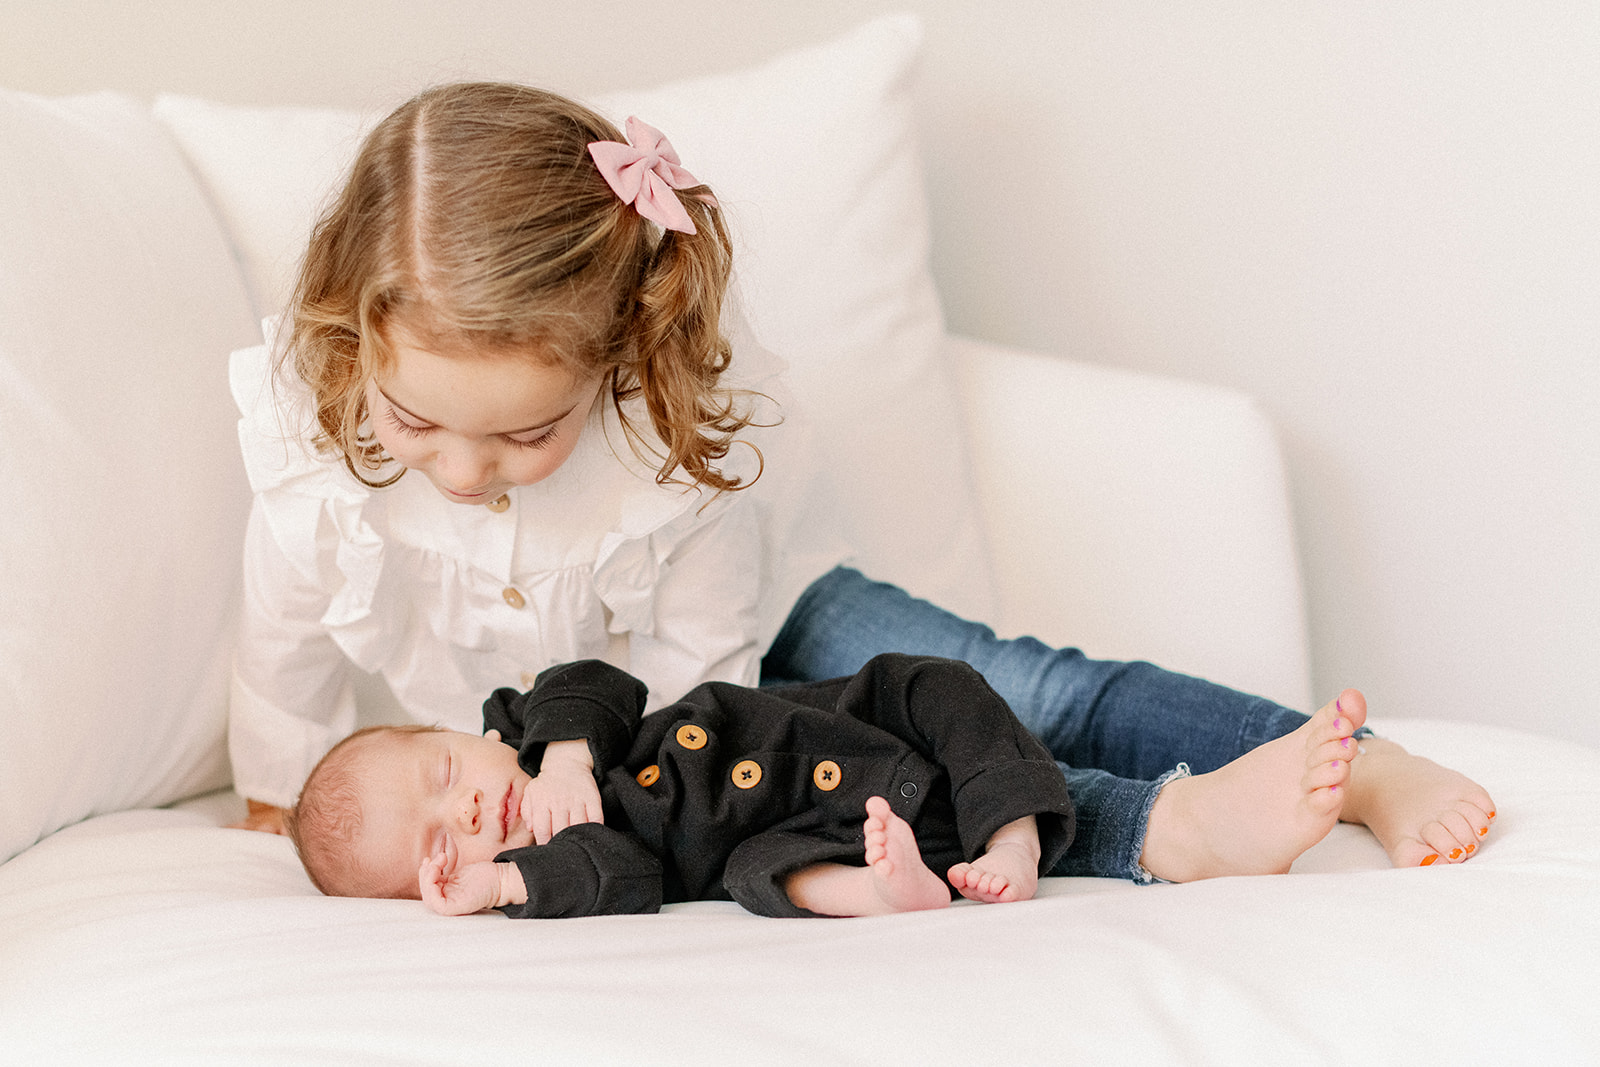 What to wear for in home studio lifestyle newborn photos - chicago naples florida newborn family photographer